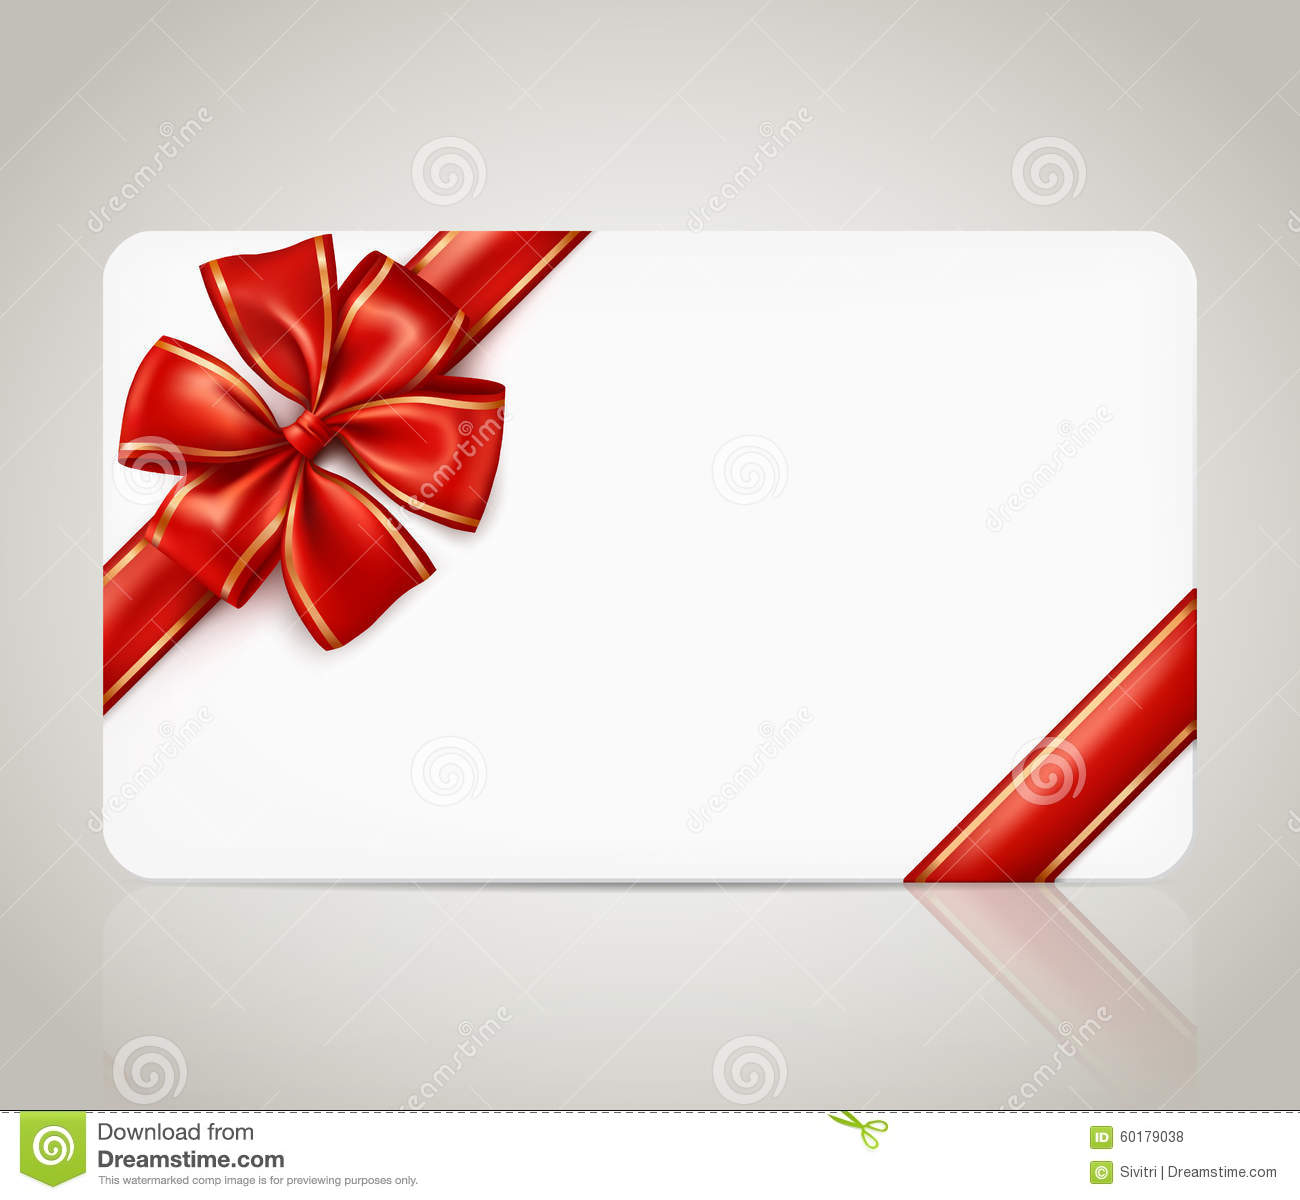 gift card template red ribbon and a bow stock vector image gift card red ribbon bow royalty stock photos